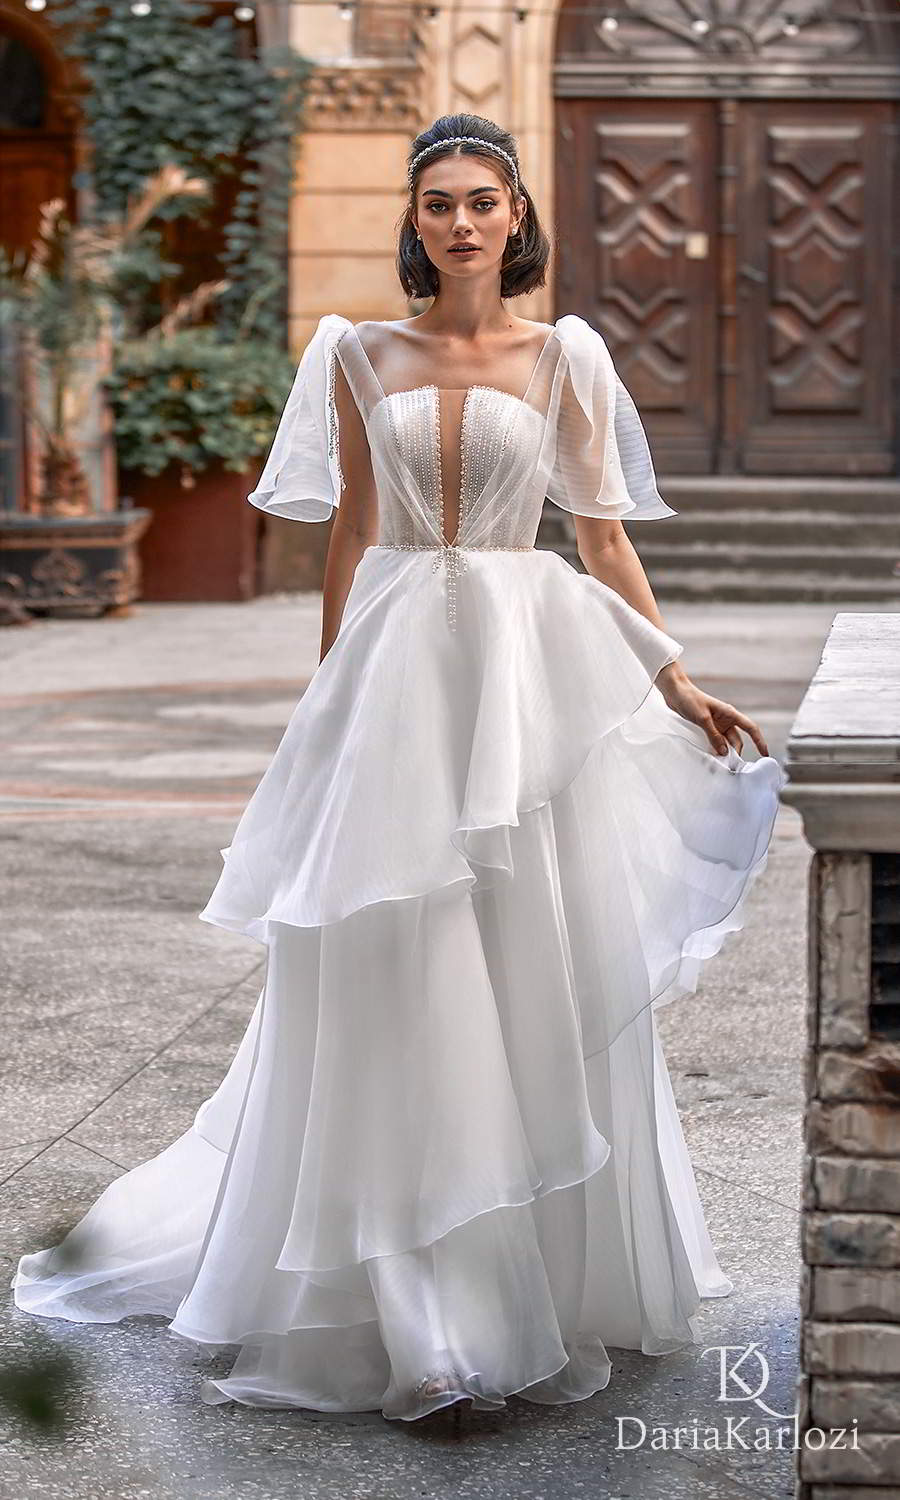 daria karlozi 2021 graceful dream bridal sleeveless flutter sleeves straight across neckline embellished bodice a line ball gown wedding dress chapel train (touch of love) mv